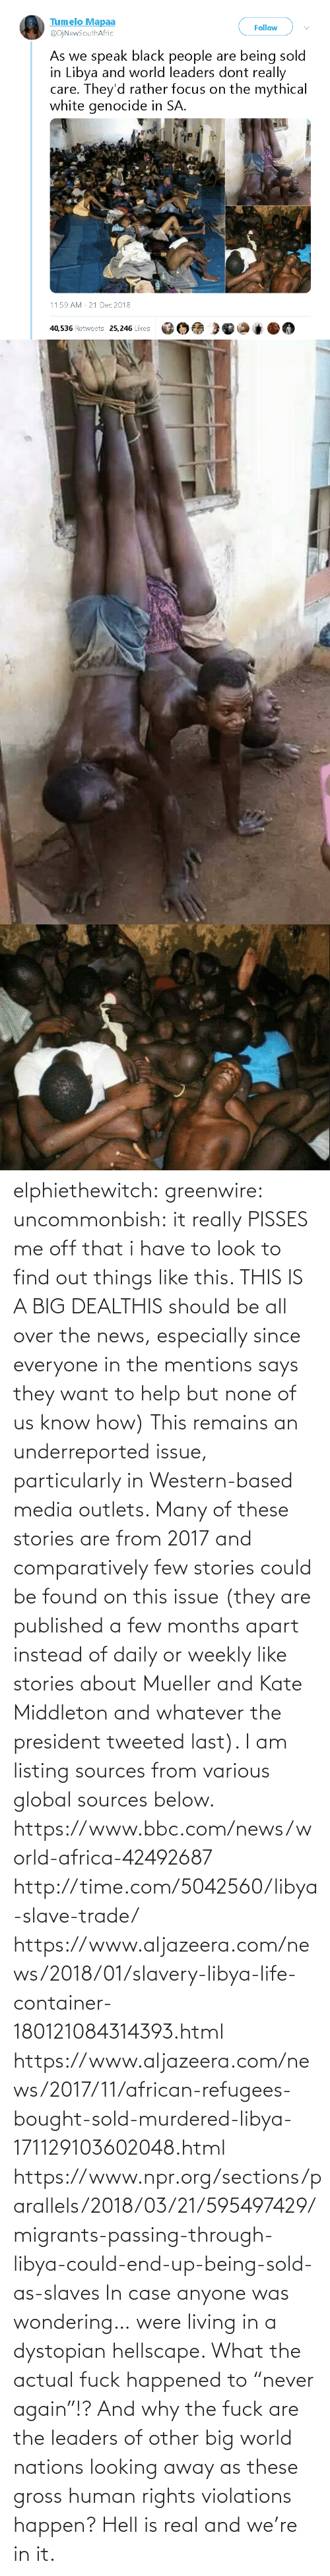 "want: elphiethewitch: greenwire:  uncommonbish:  it really PISSES me off that i have to look to find out things like this. THIS IS A BIG DEALTHIS should be all over the news, especially since everyone in the mentions says they want to help but none of us know how)  This remains an underreported issue, particularly in Western-based media outlets. Many of these stories are from 2017 and comparatively few stories could be found on this issue (they are published a few months apart instead of daily or weekly like stories about Mueller and Kate Middleton and whatever the president tweeted last). I am listing sources from various global sources below.  https://www.bbc.com/news/world-africa-42492687 http://time.com/5042560/libya-slave-trade/ https://www.aljazeera.com/news/2018/01/slavery-libya-life-container-180121084314393.html https://www.aljazeera.com/news/2017/11/african-refugees-bought-sold-murdered-libya-171129103602048.html https://www.npr.org/sections/parallels/2018/03/21/595497429/migrants-passing-through-libya-could-end-up-being-sold-as-slaves   In case anyone was wondering… were living in a dystopian hellscape.  What the actual fuck happened to ""never again""!? And why the fuck are the leaders of other big world nations looking away as these gross human rights violations happen?  Hell is real and we're in it."